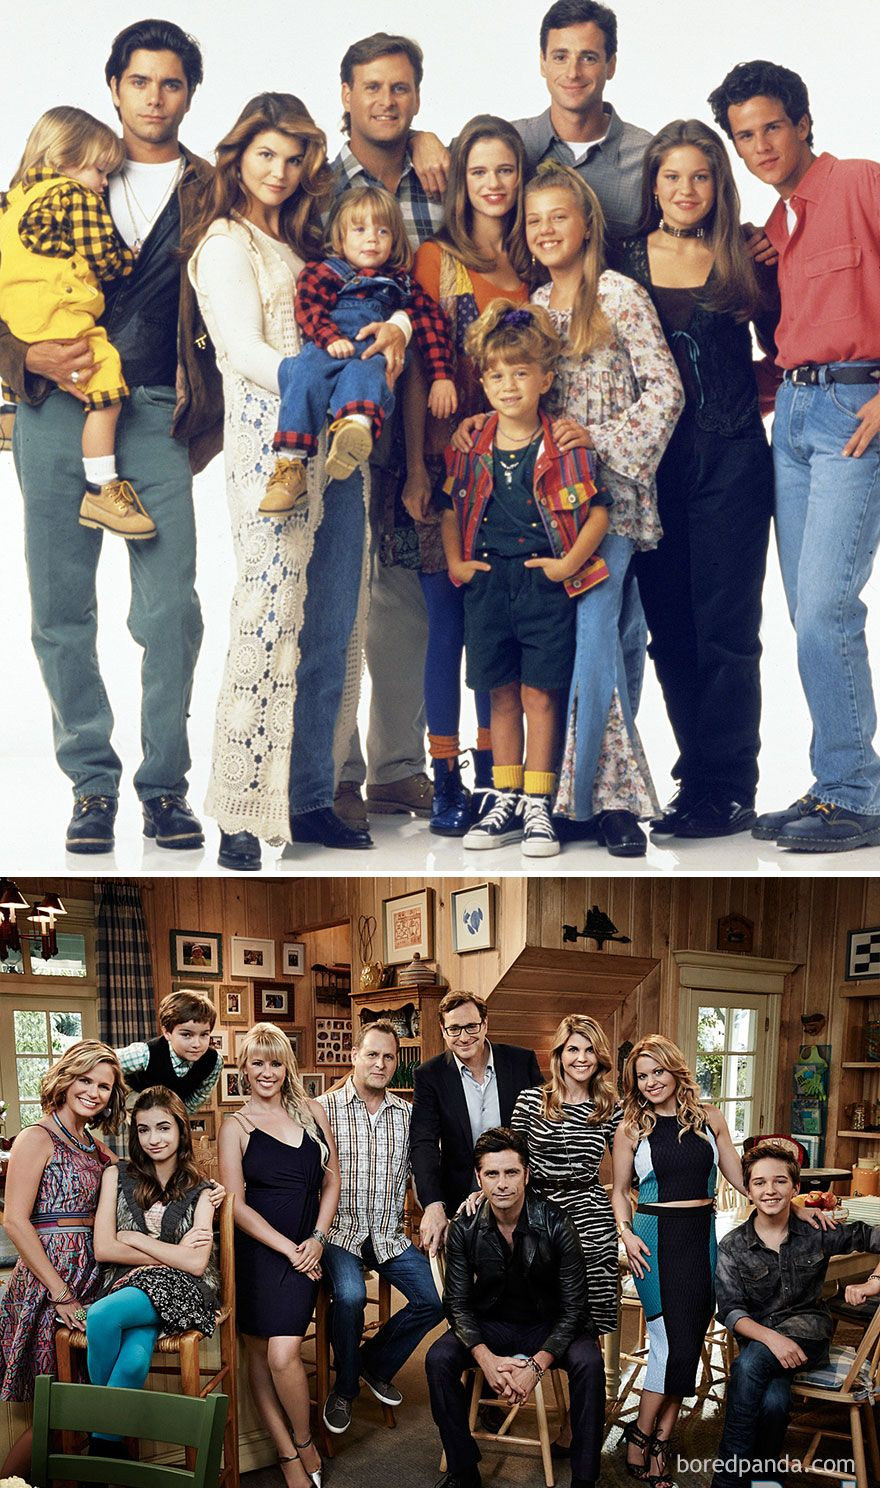 Full House 1990 Vs 2016 In 2020 Full House Full House Cast Fuller House